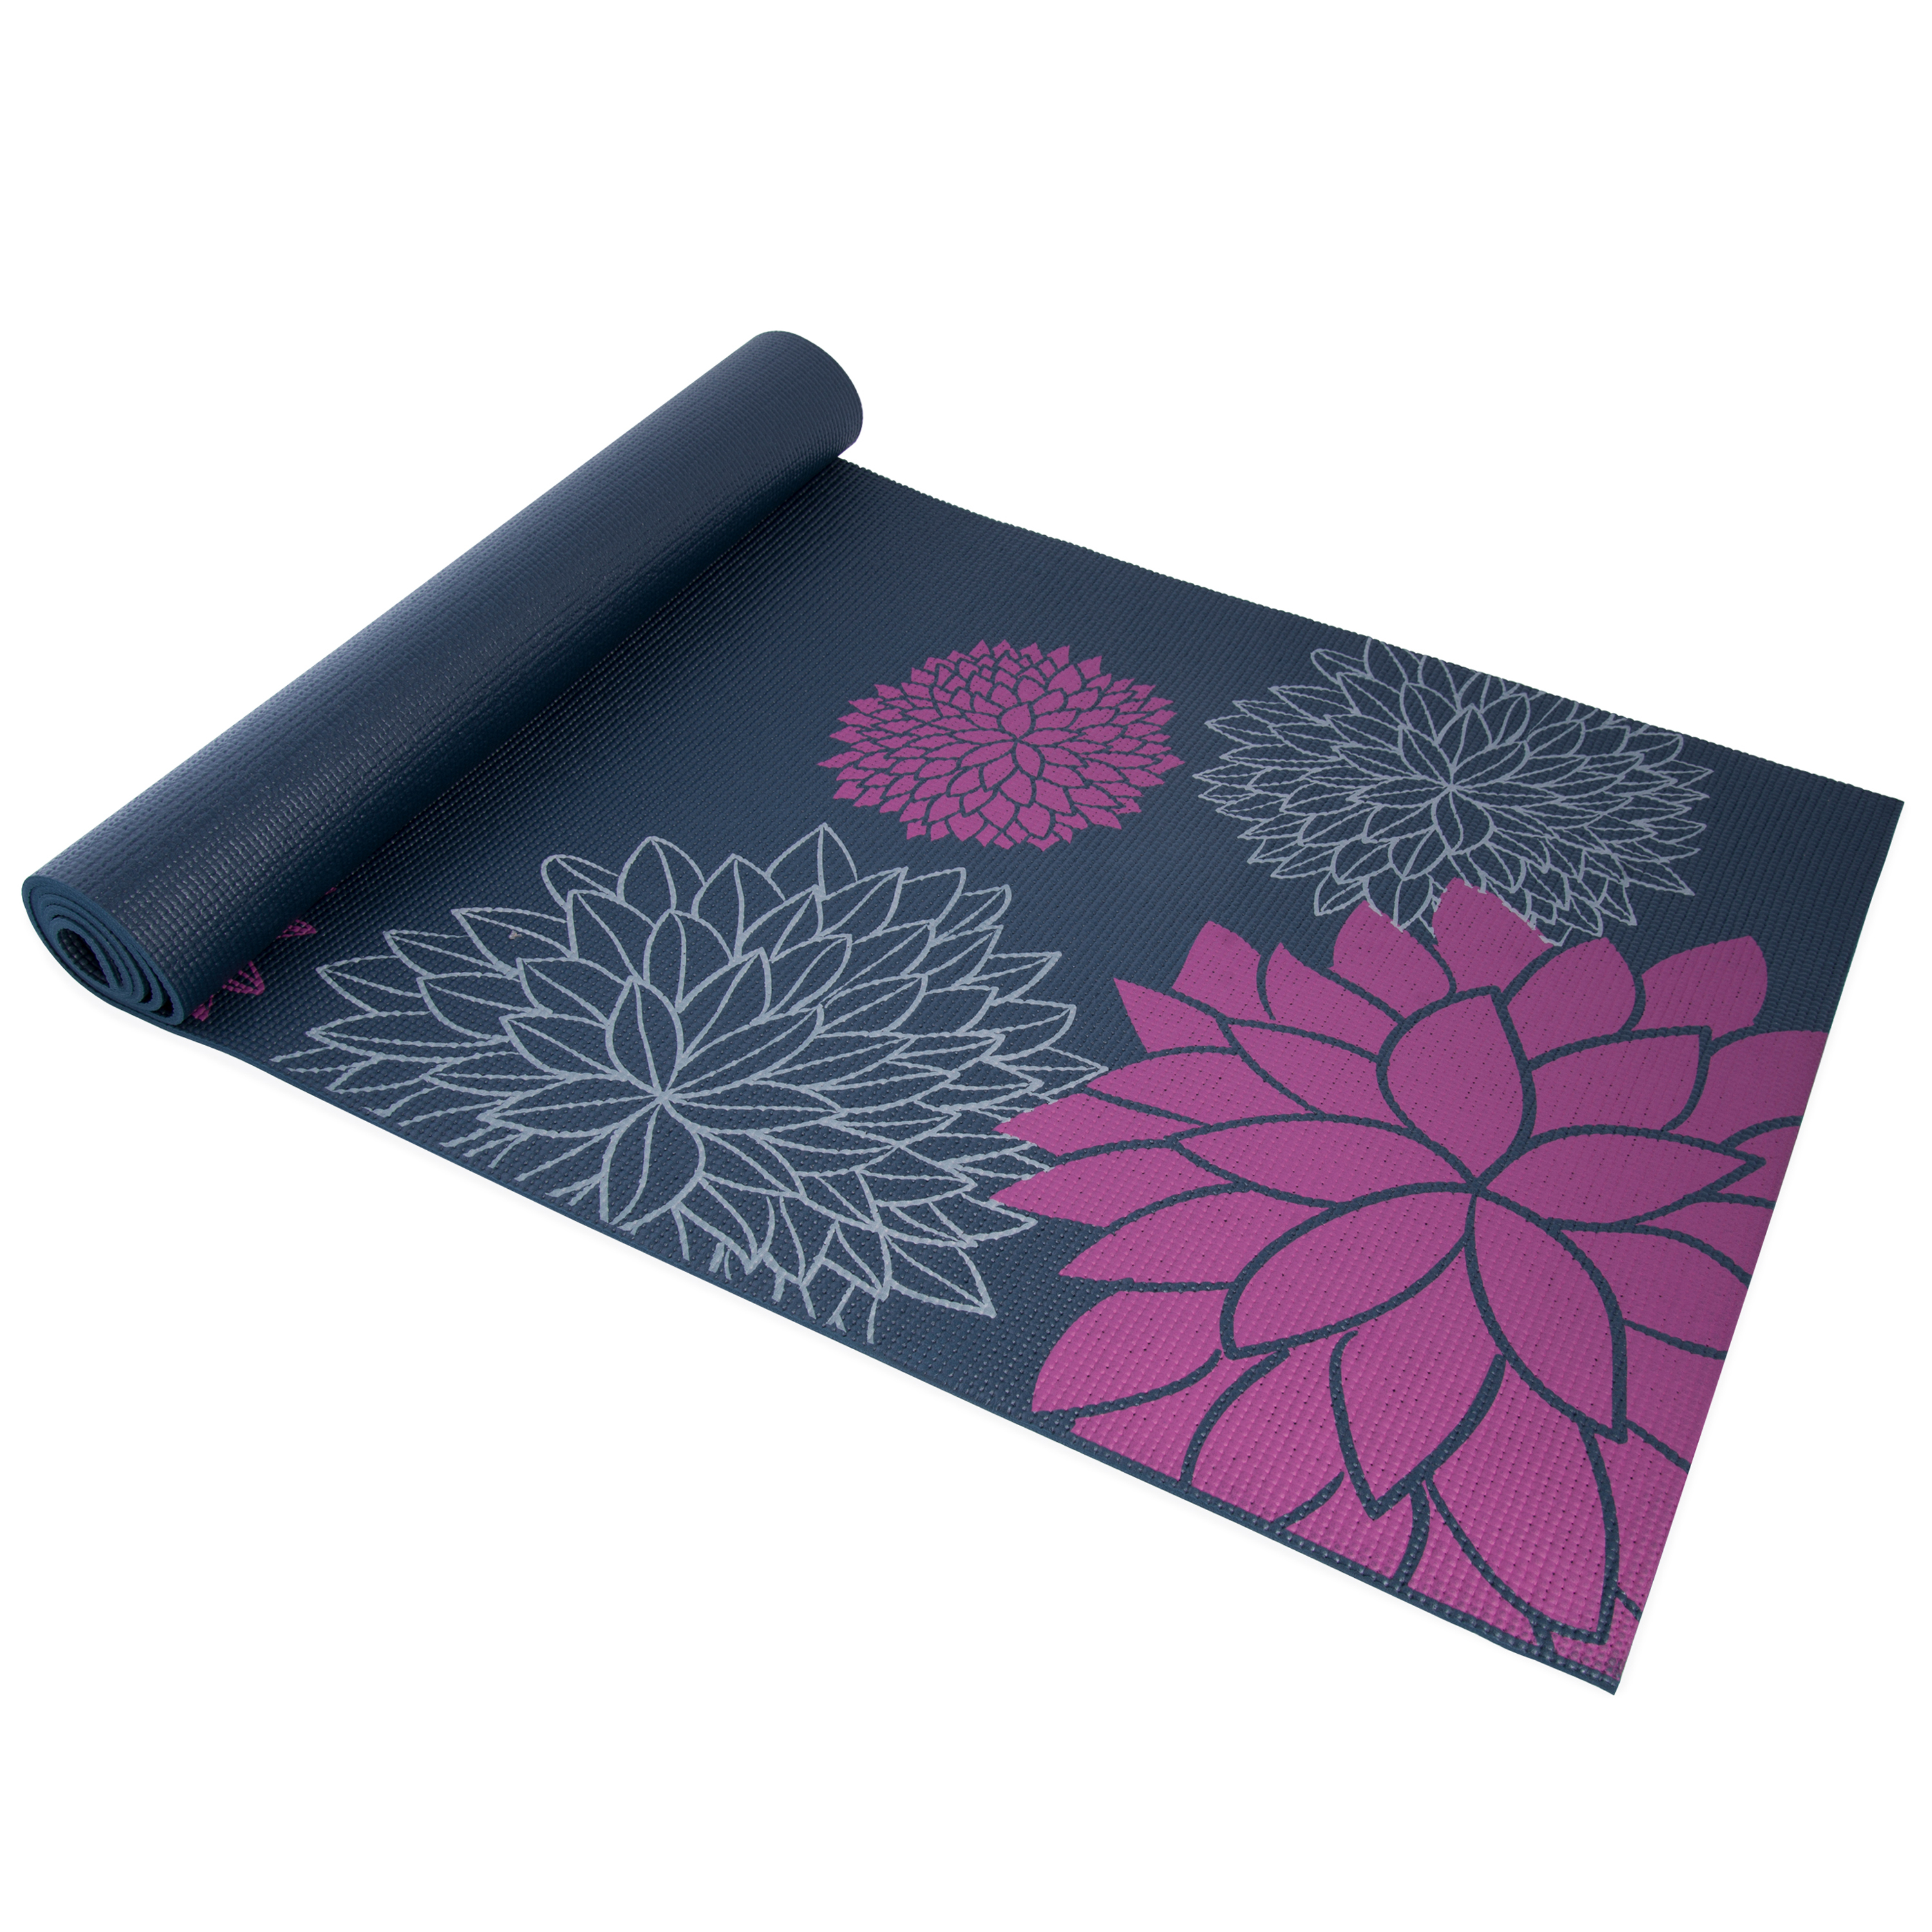 CAP YOGA Mat with Carry Strap, Dahlia